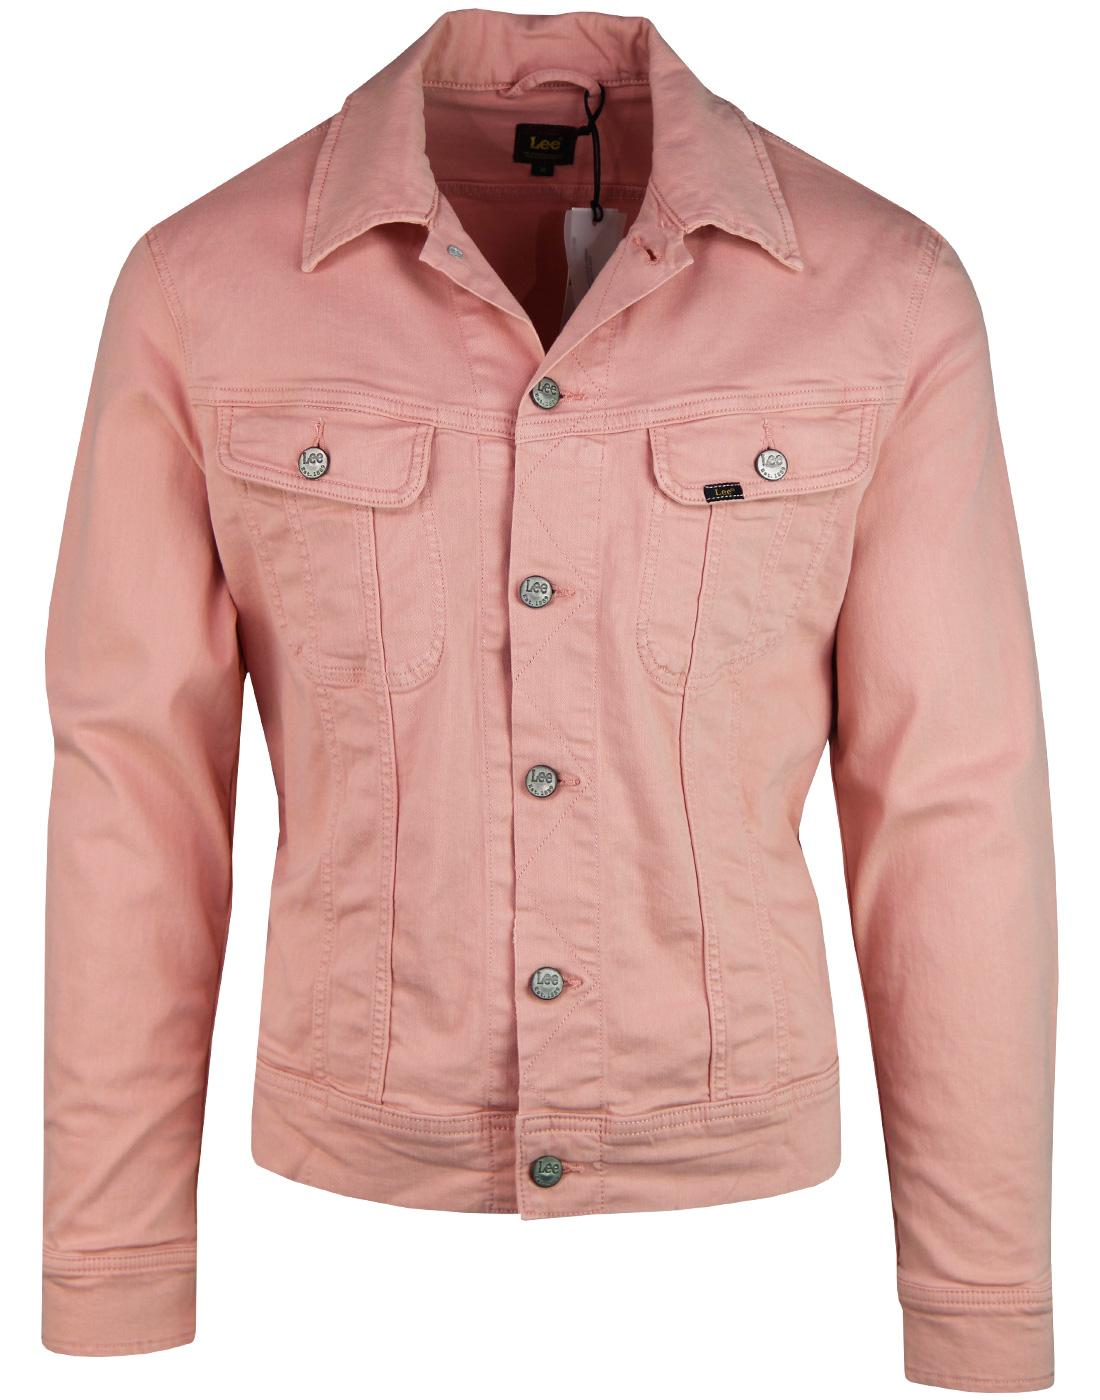 LEE Slim Rider Retro 80s Denim Jacket FADED PINK